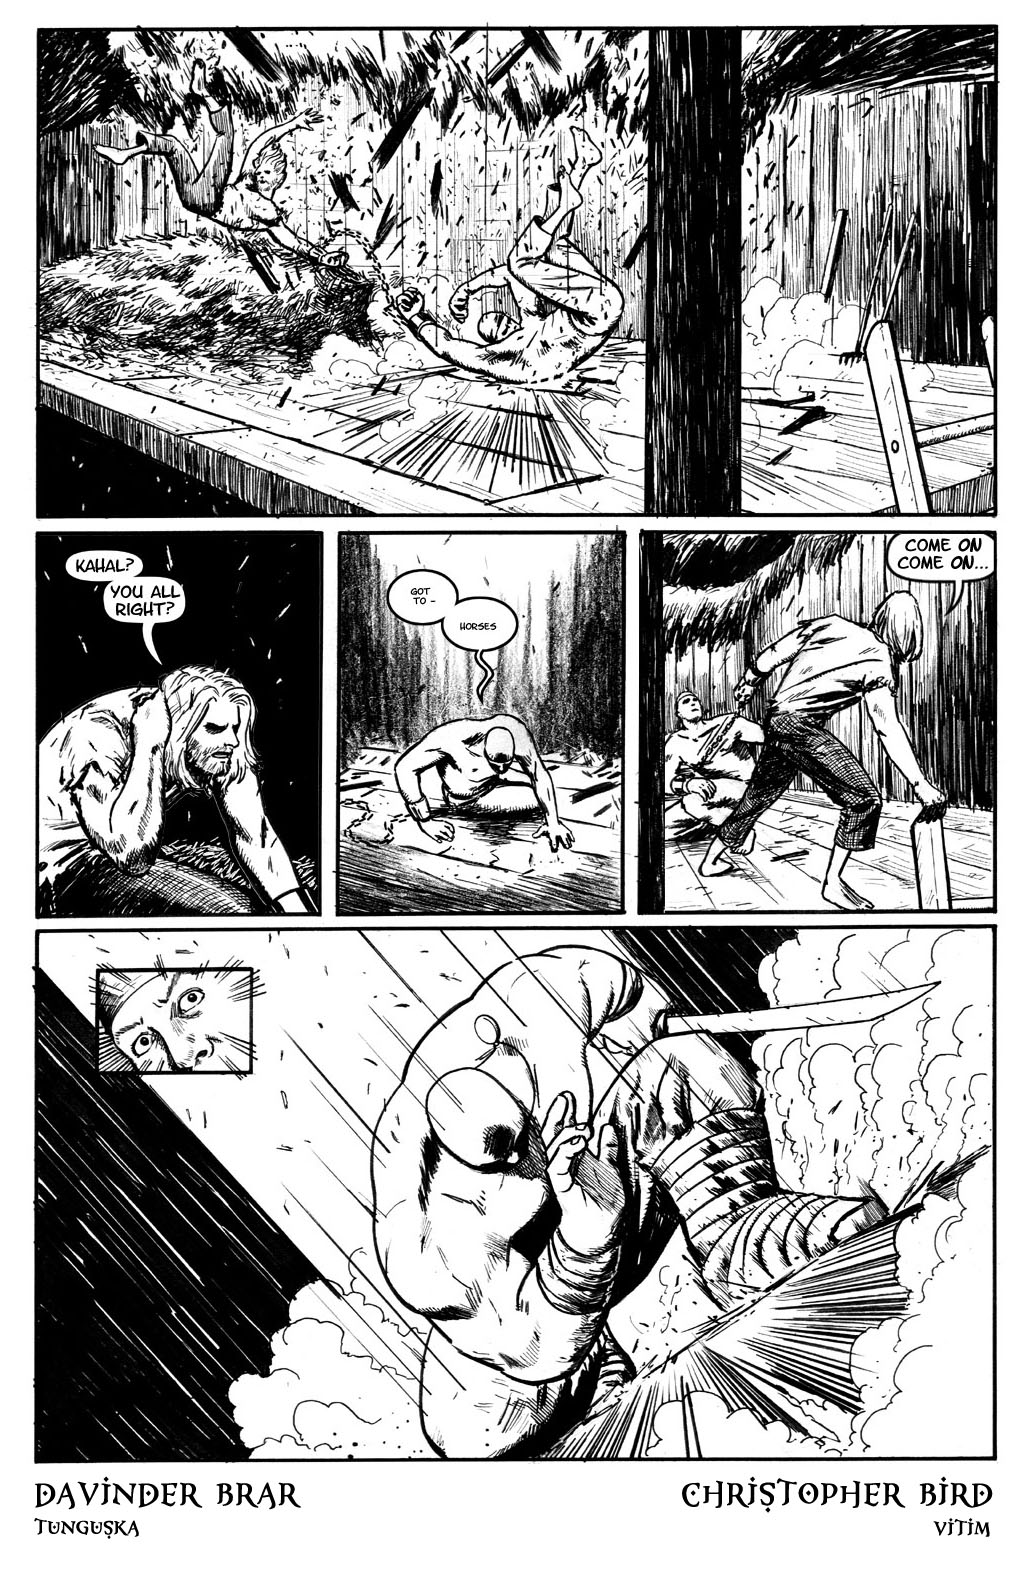 Book 2, page 25